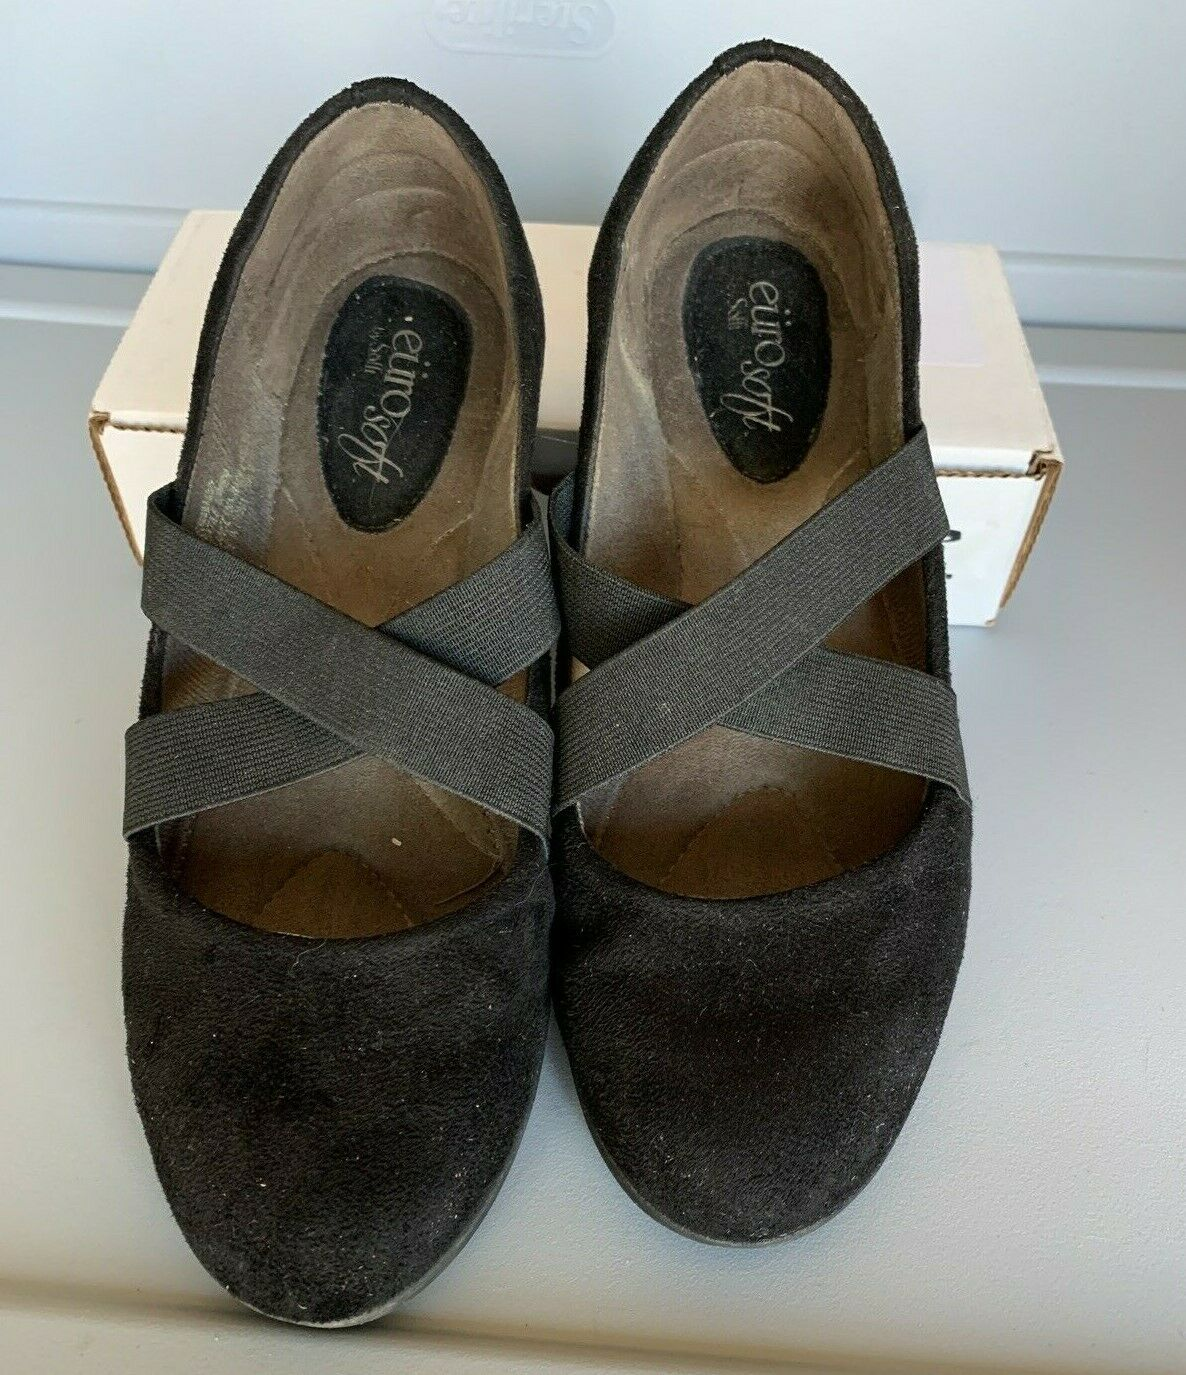 Womens Euro Soft By Sofft Black Suede Elastic Tie Mary Jane Casual Flats US 6.5M